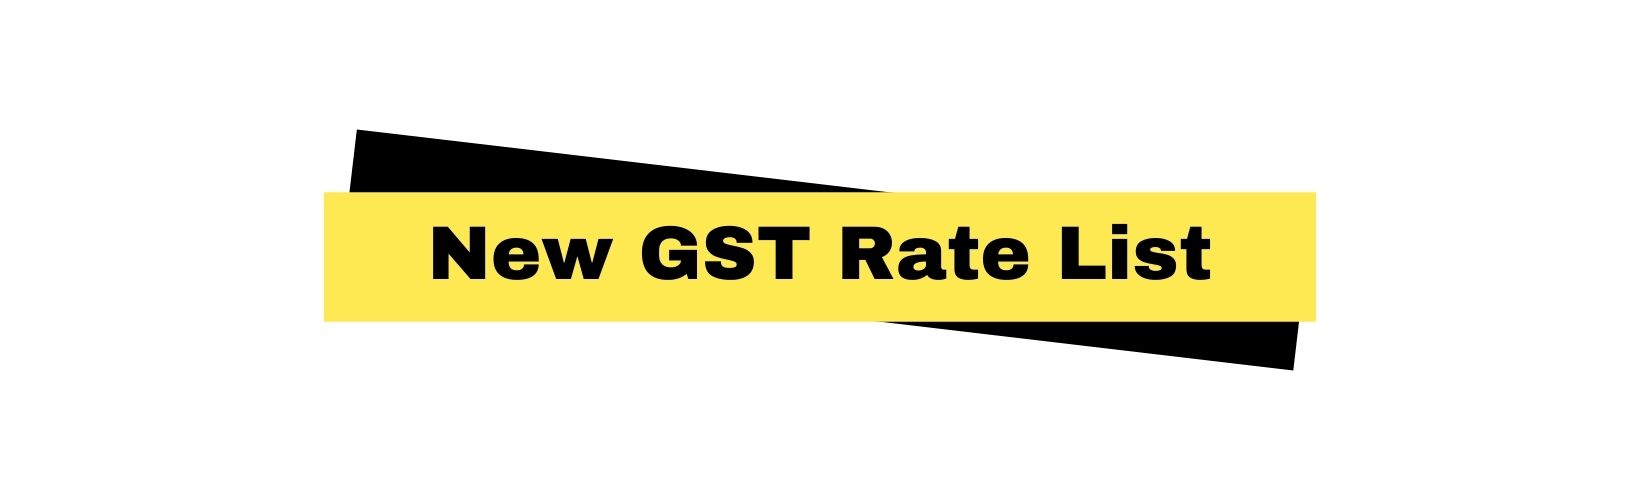 New GST Rate List